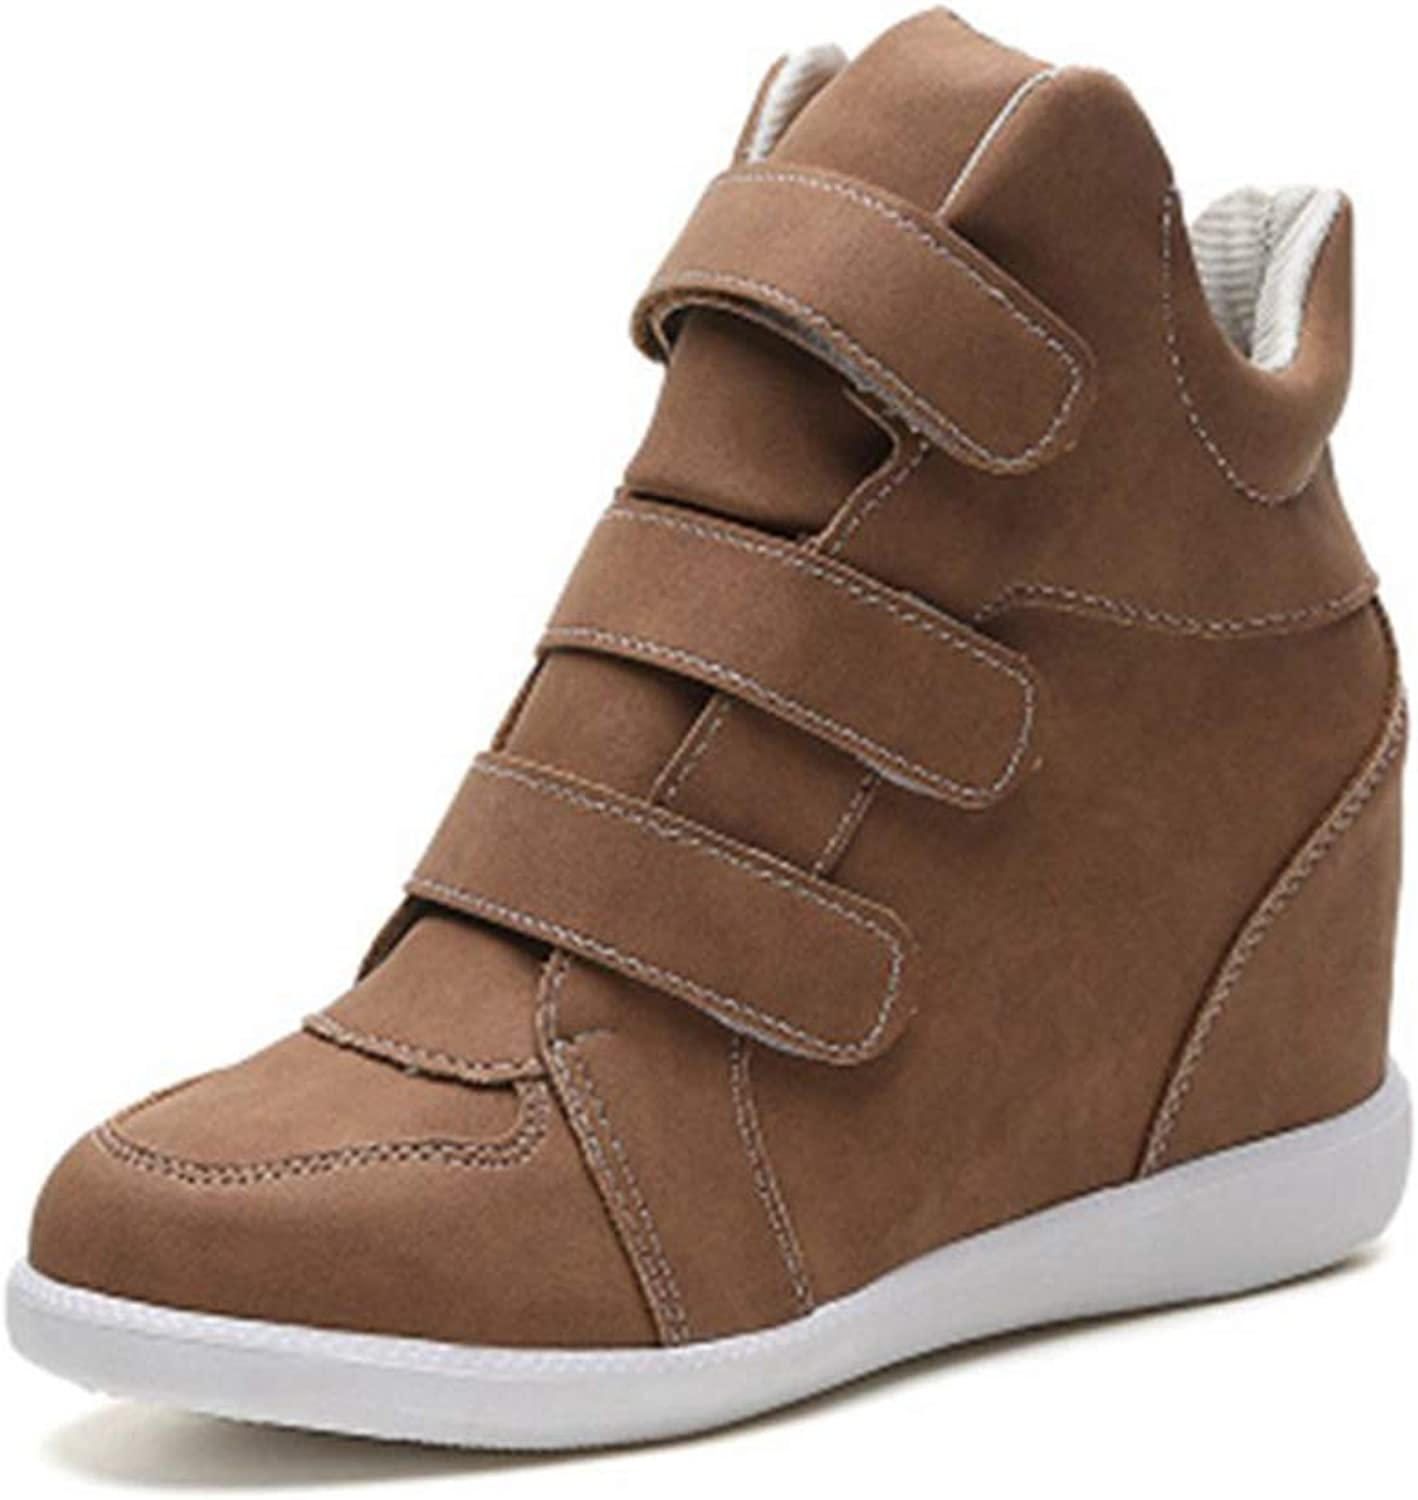 U-MAC Womens Hidden Heels Wedge Sneakers Fashion High Breathable Thick Sole Non Skid Walking shoes